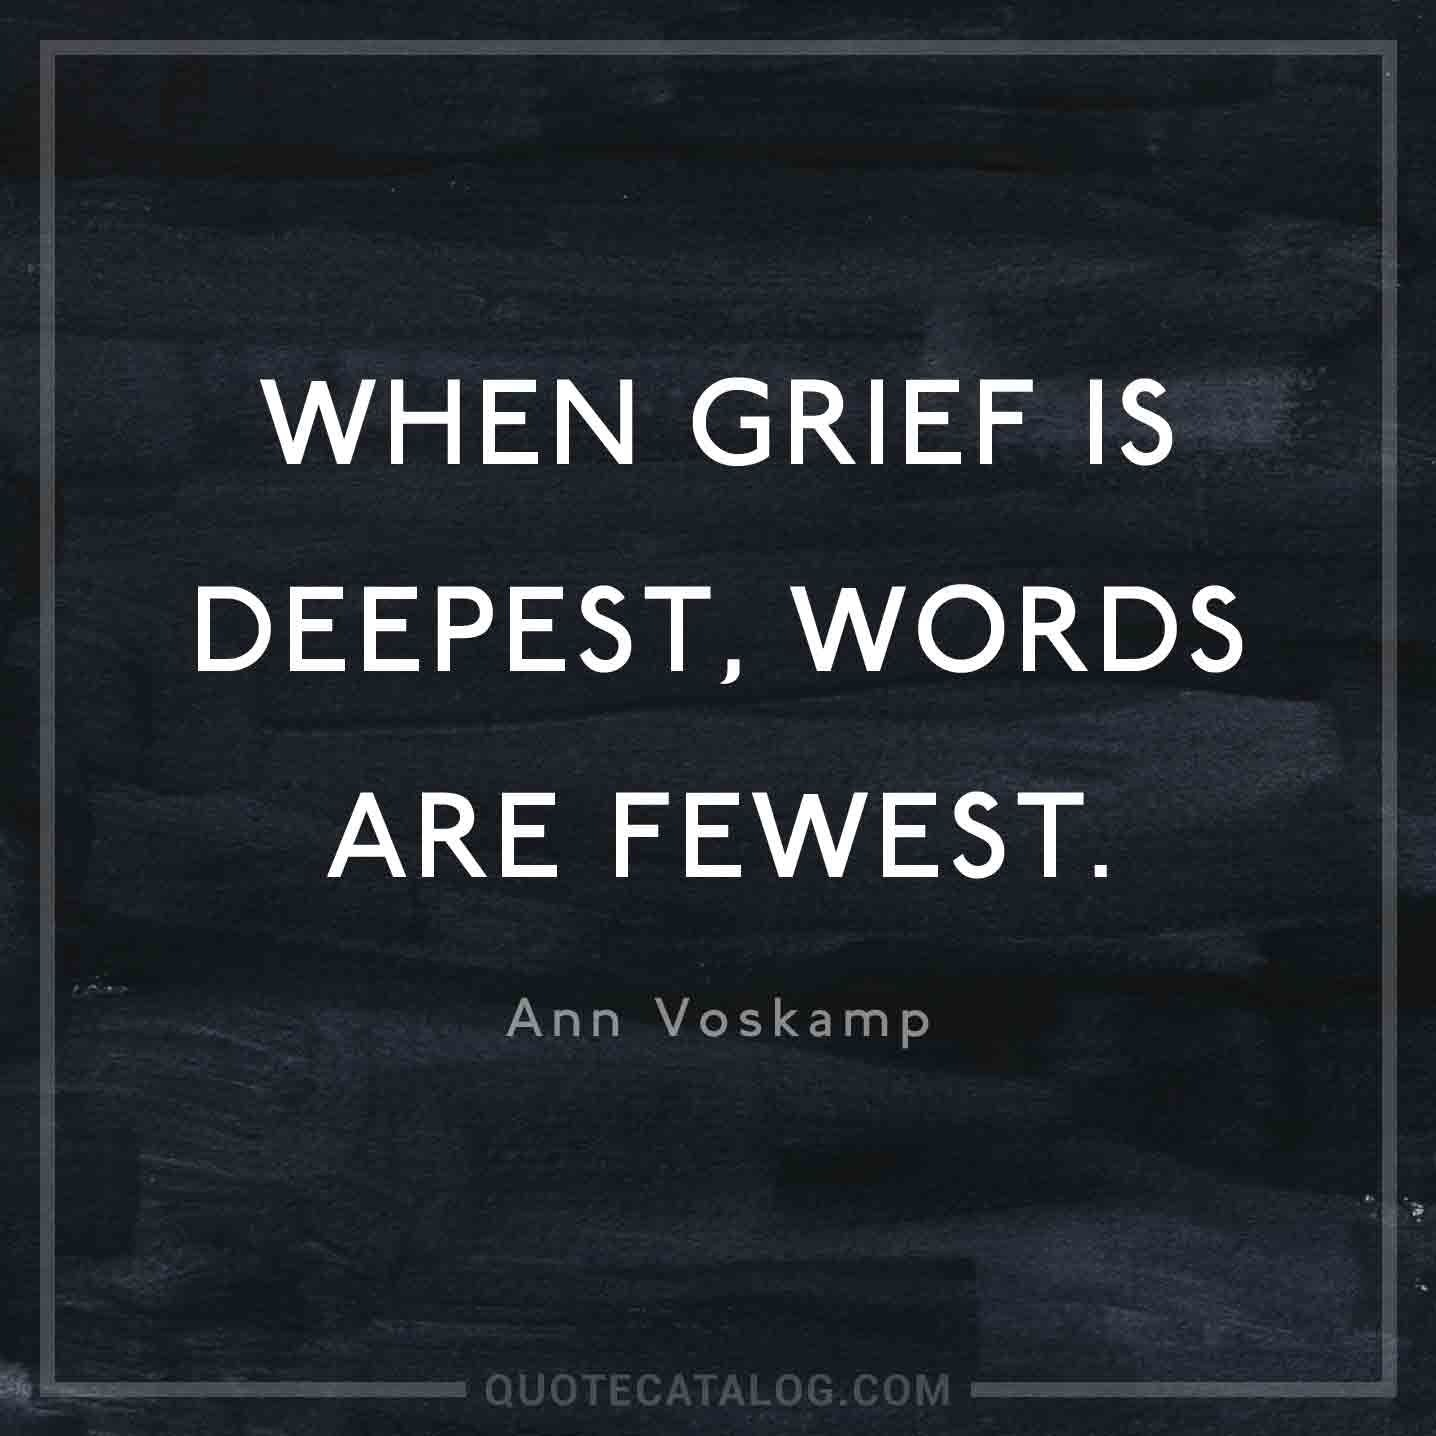 Urdu Poetry When Grief Is Deepest Words Are Fewest Quote Catalog 150 Sad Quotes That Will Speak To Your Isolated Heart